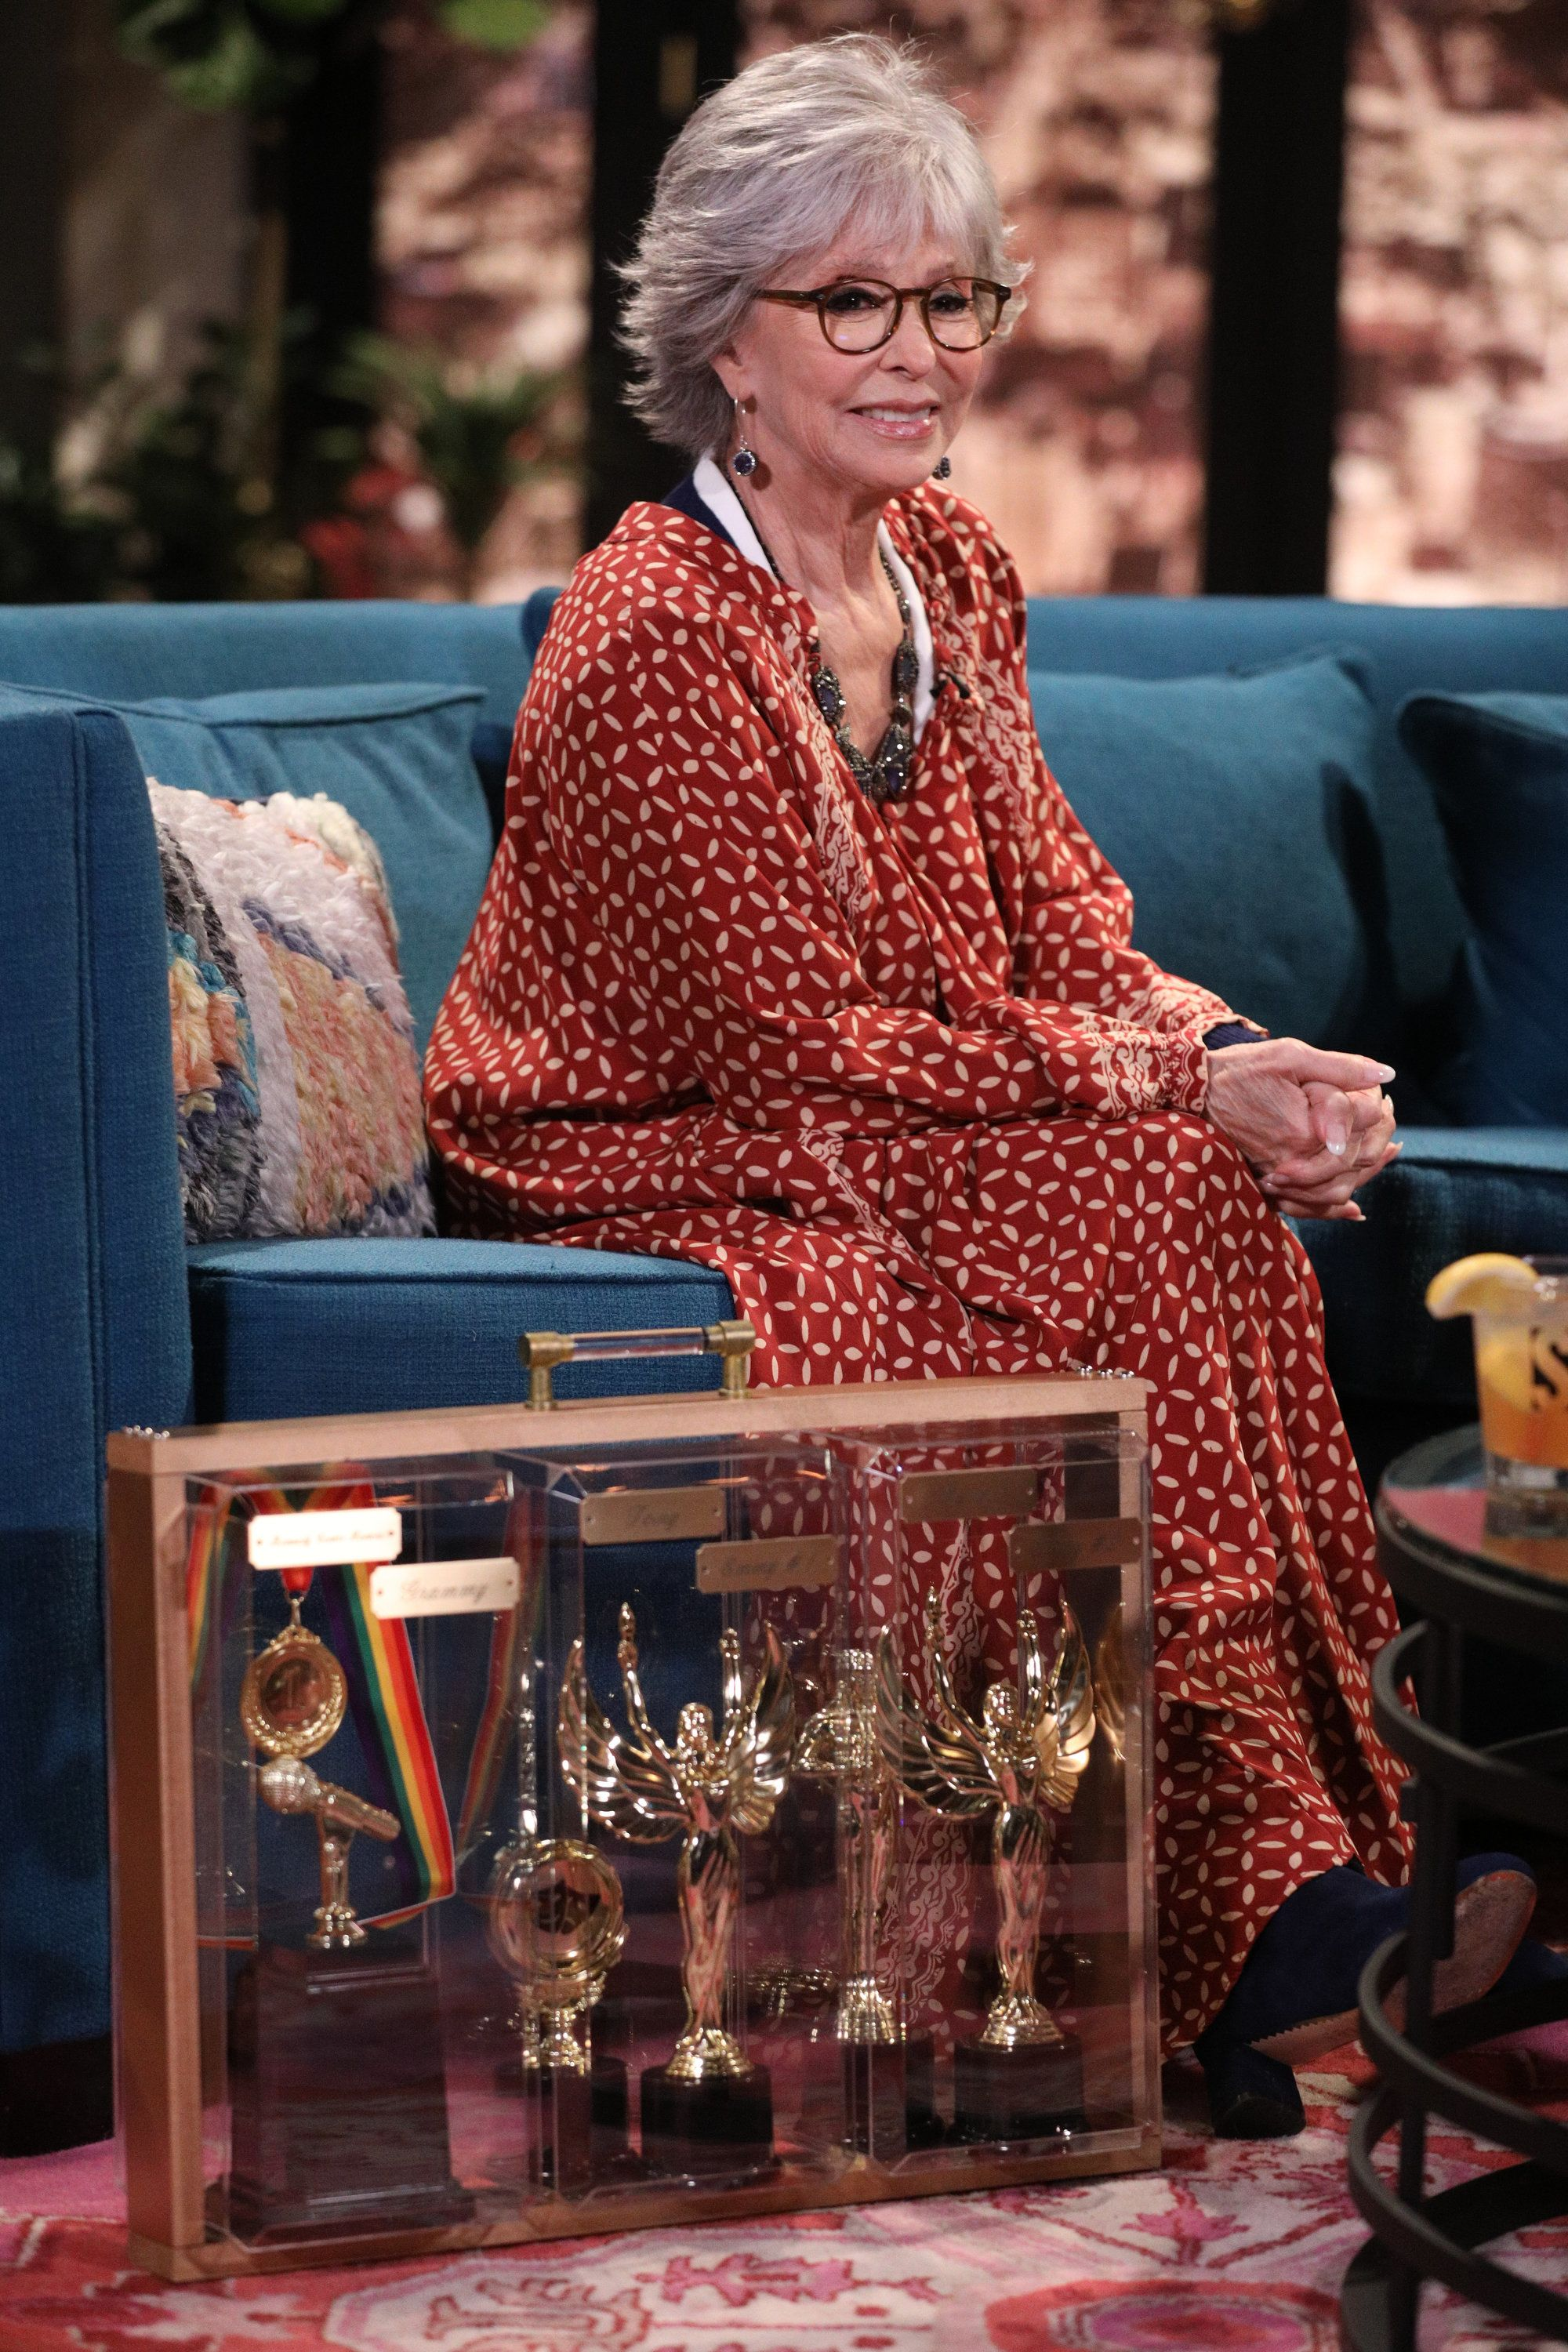 BUSY TONIGHT -- Episode 1068 -- Pictured: Guest Rita Moreno on the set of Busy Tonight -- (Photo by: Jordin Althaus/E! Entertainment/NBCU Photo Bank via Getty Images)